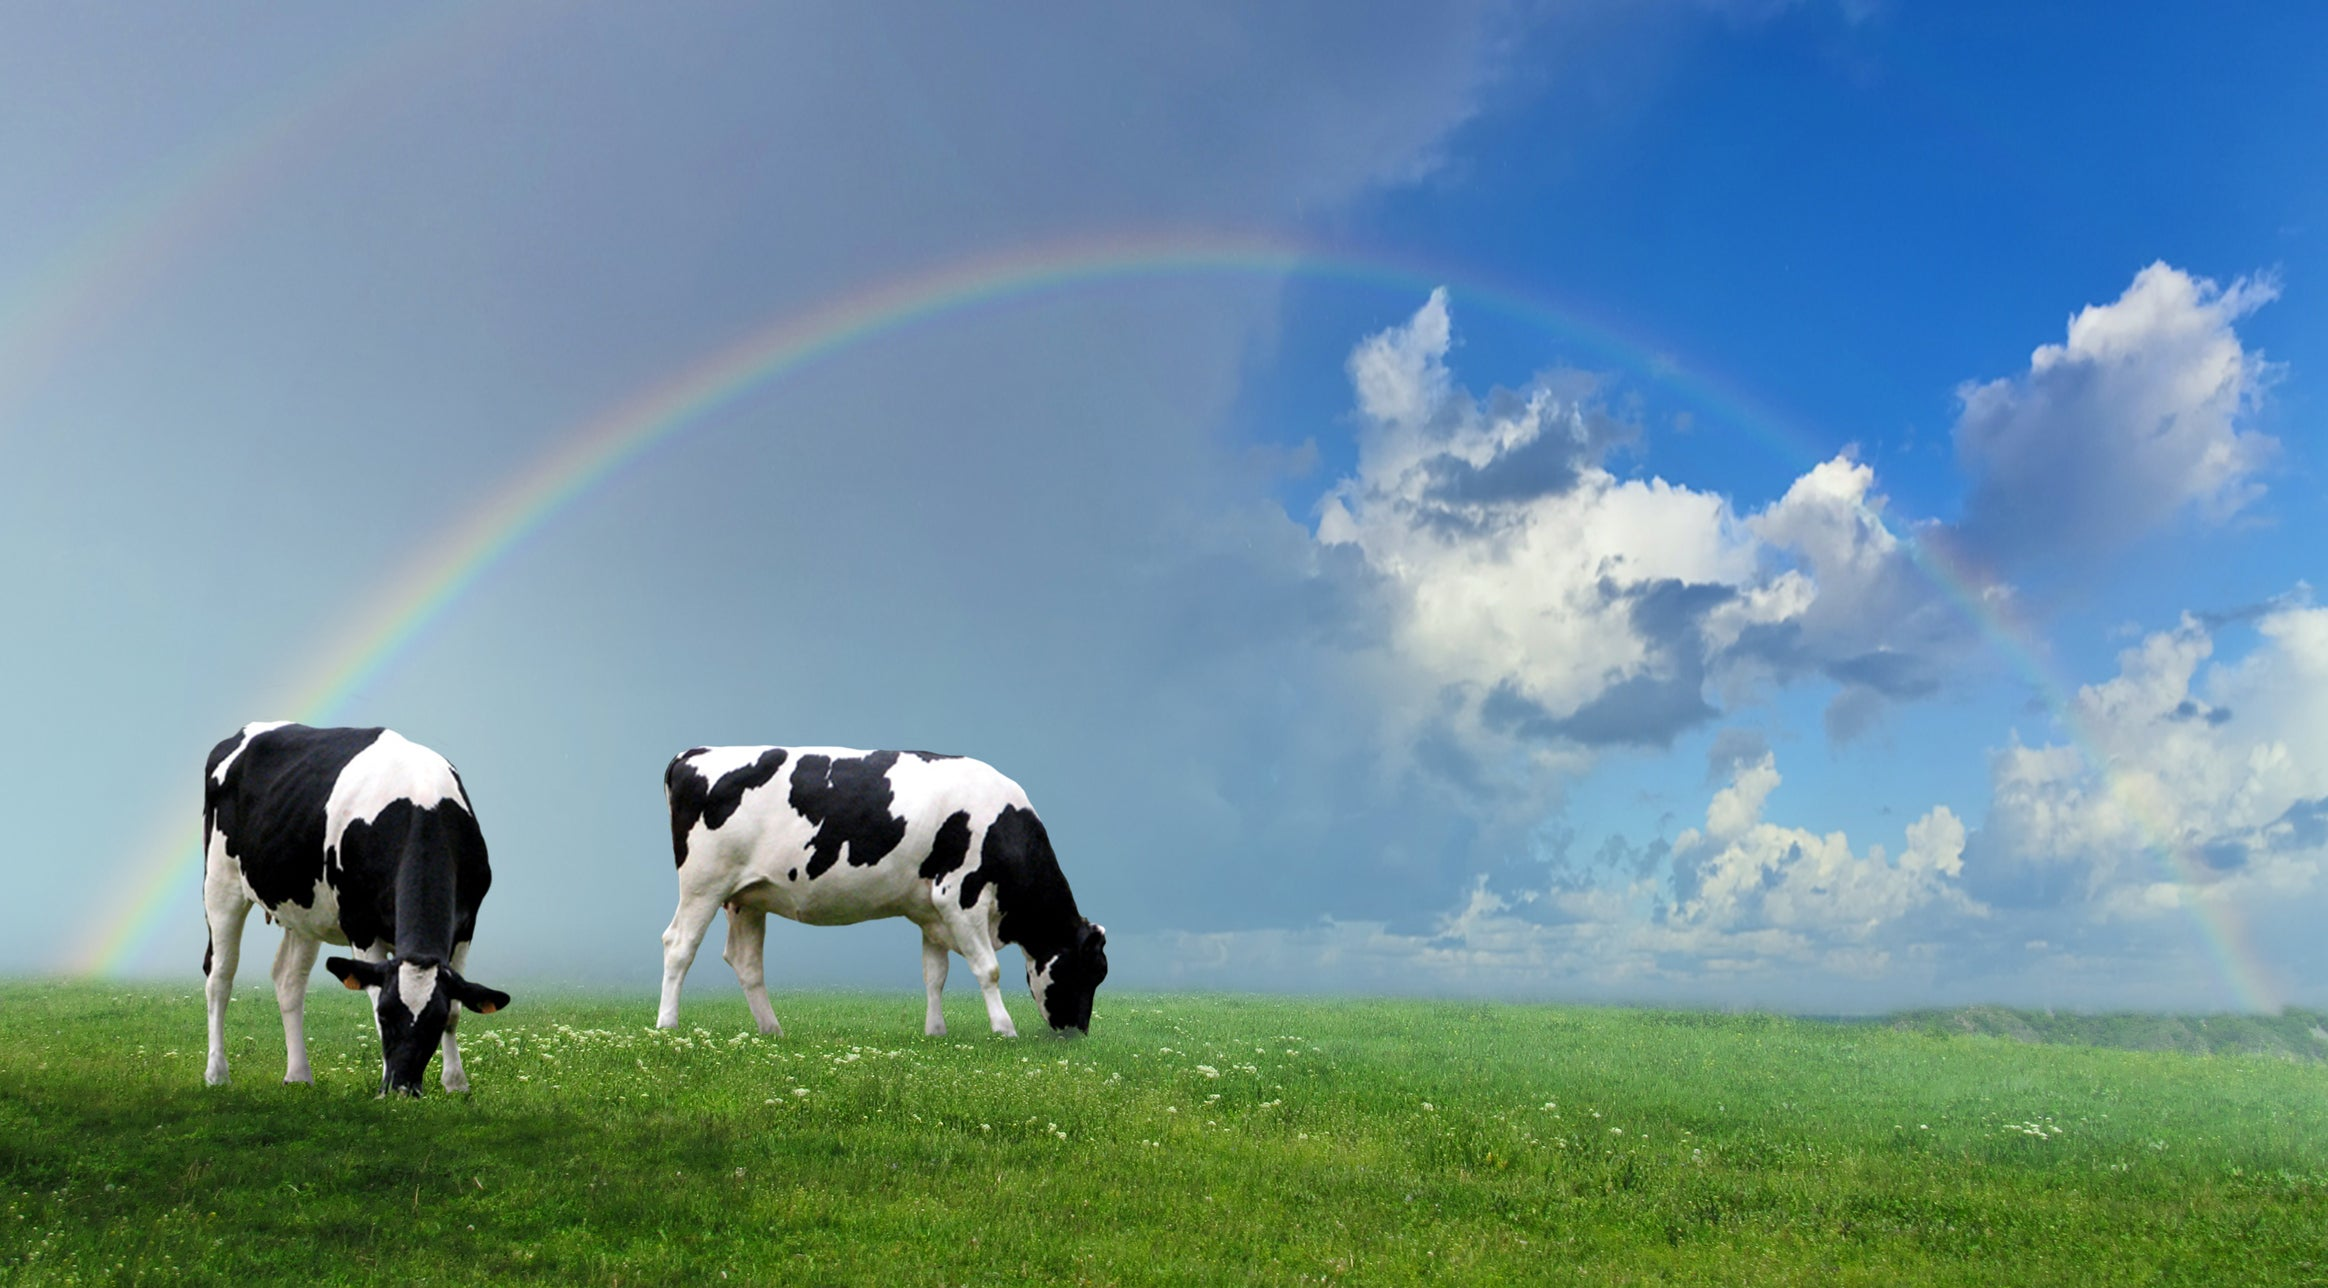 Two cows grazing in a field under a rainbow